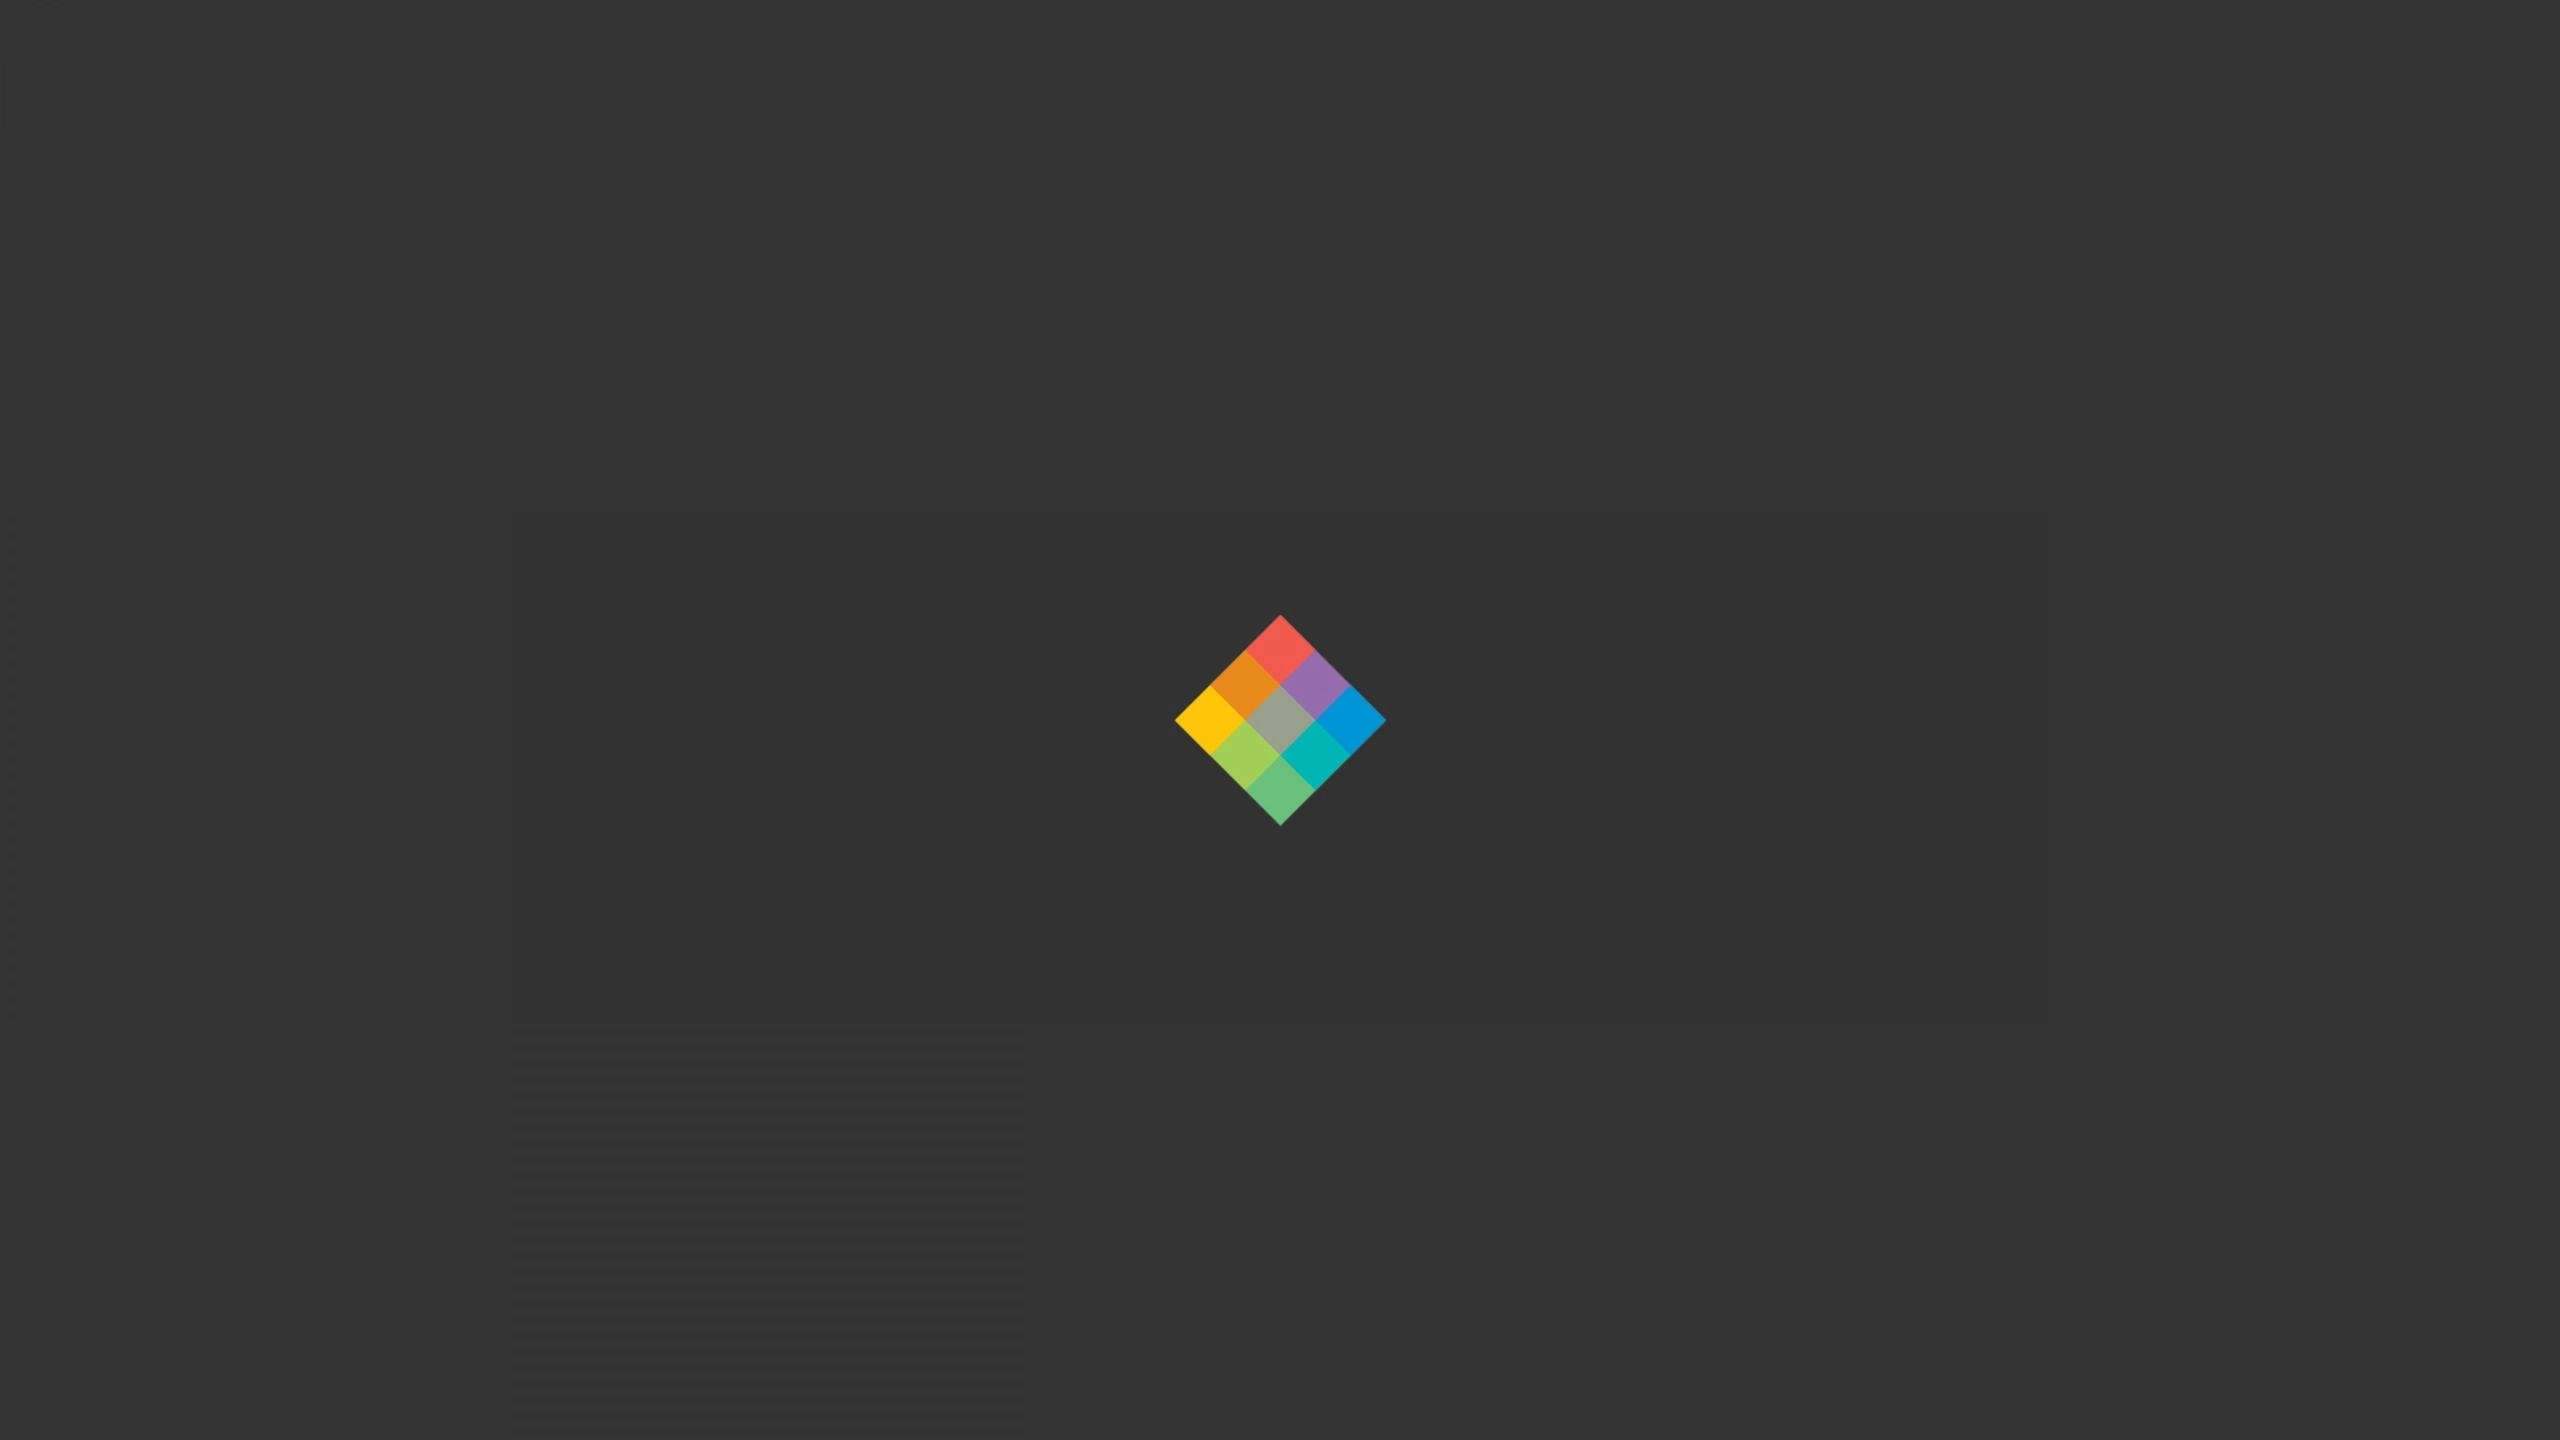 The Best Free Minimalist wallpapers